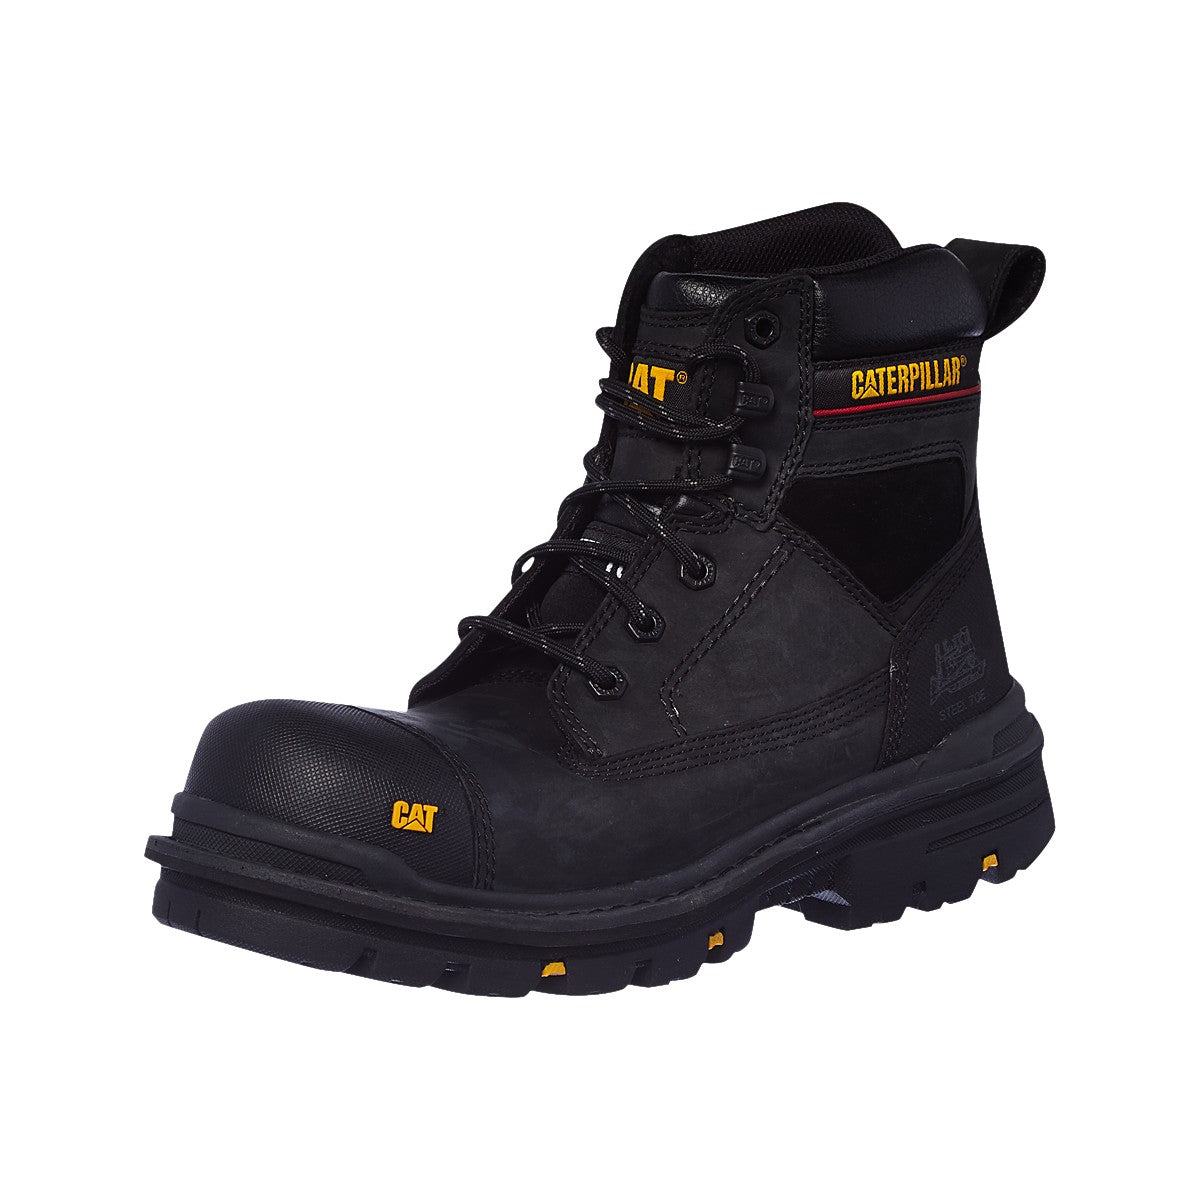 Mens Caterpillar Gravel Steel Toe Cap Safety Boots Cat Heavy Duty